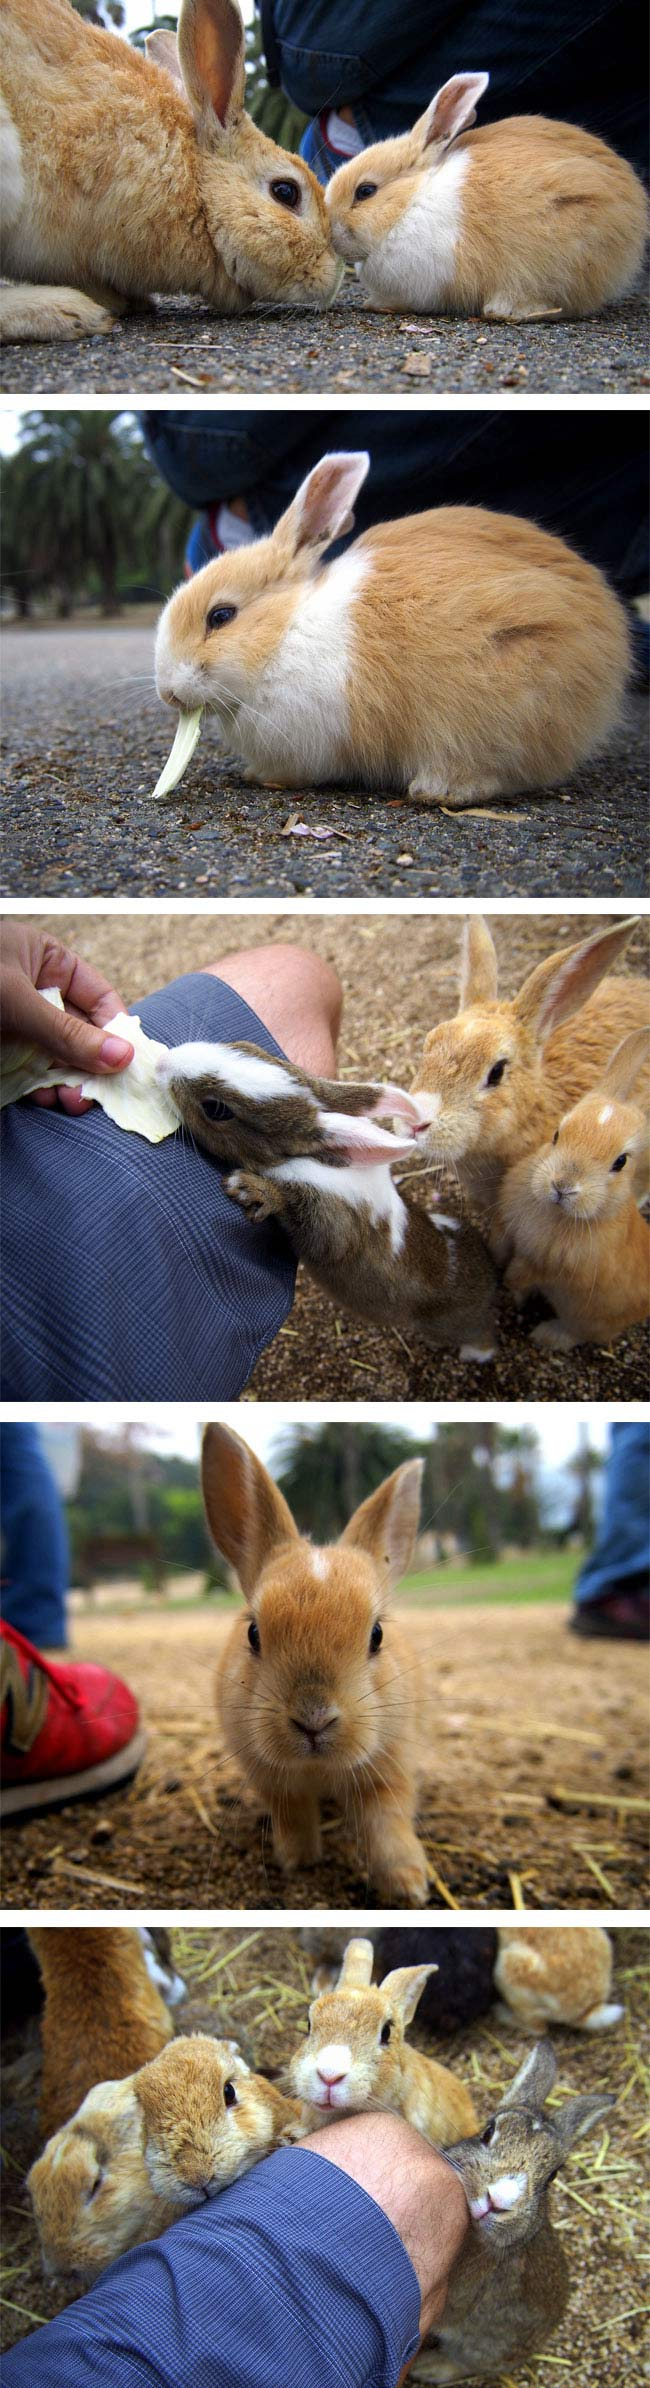 Rabbit Island, Okunoshima, Japan (8)